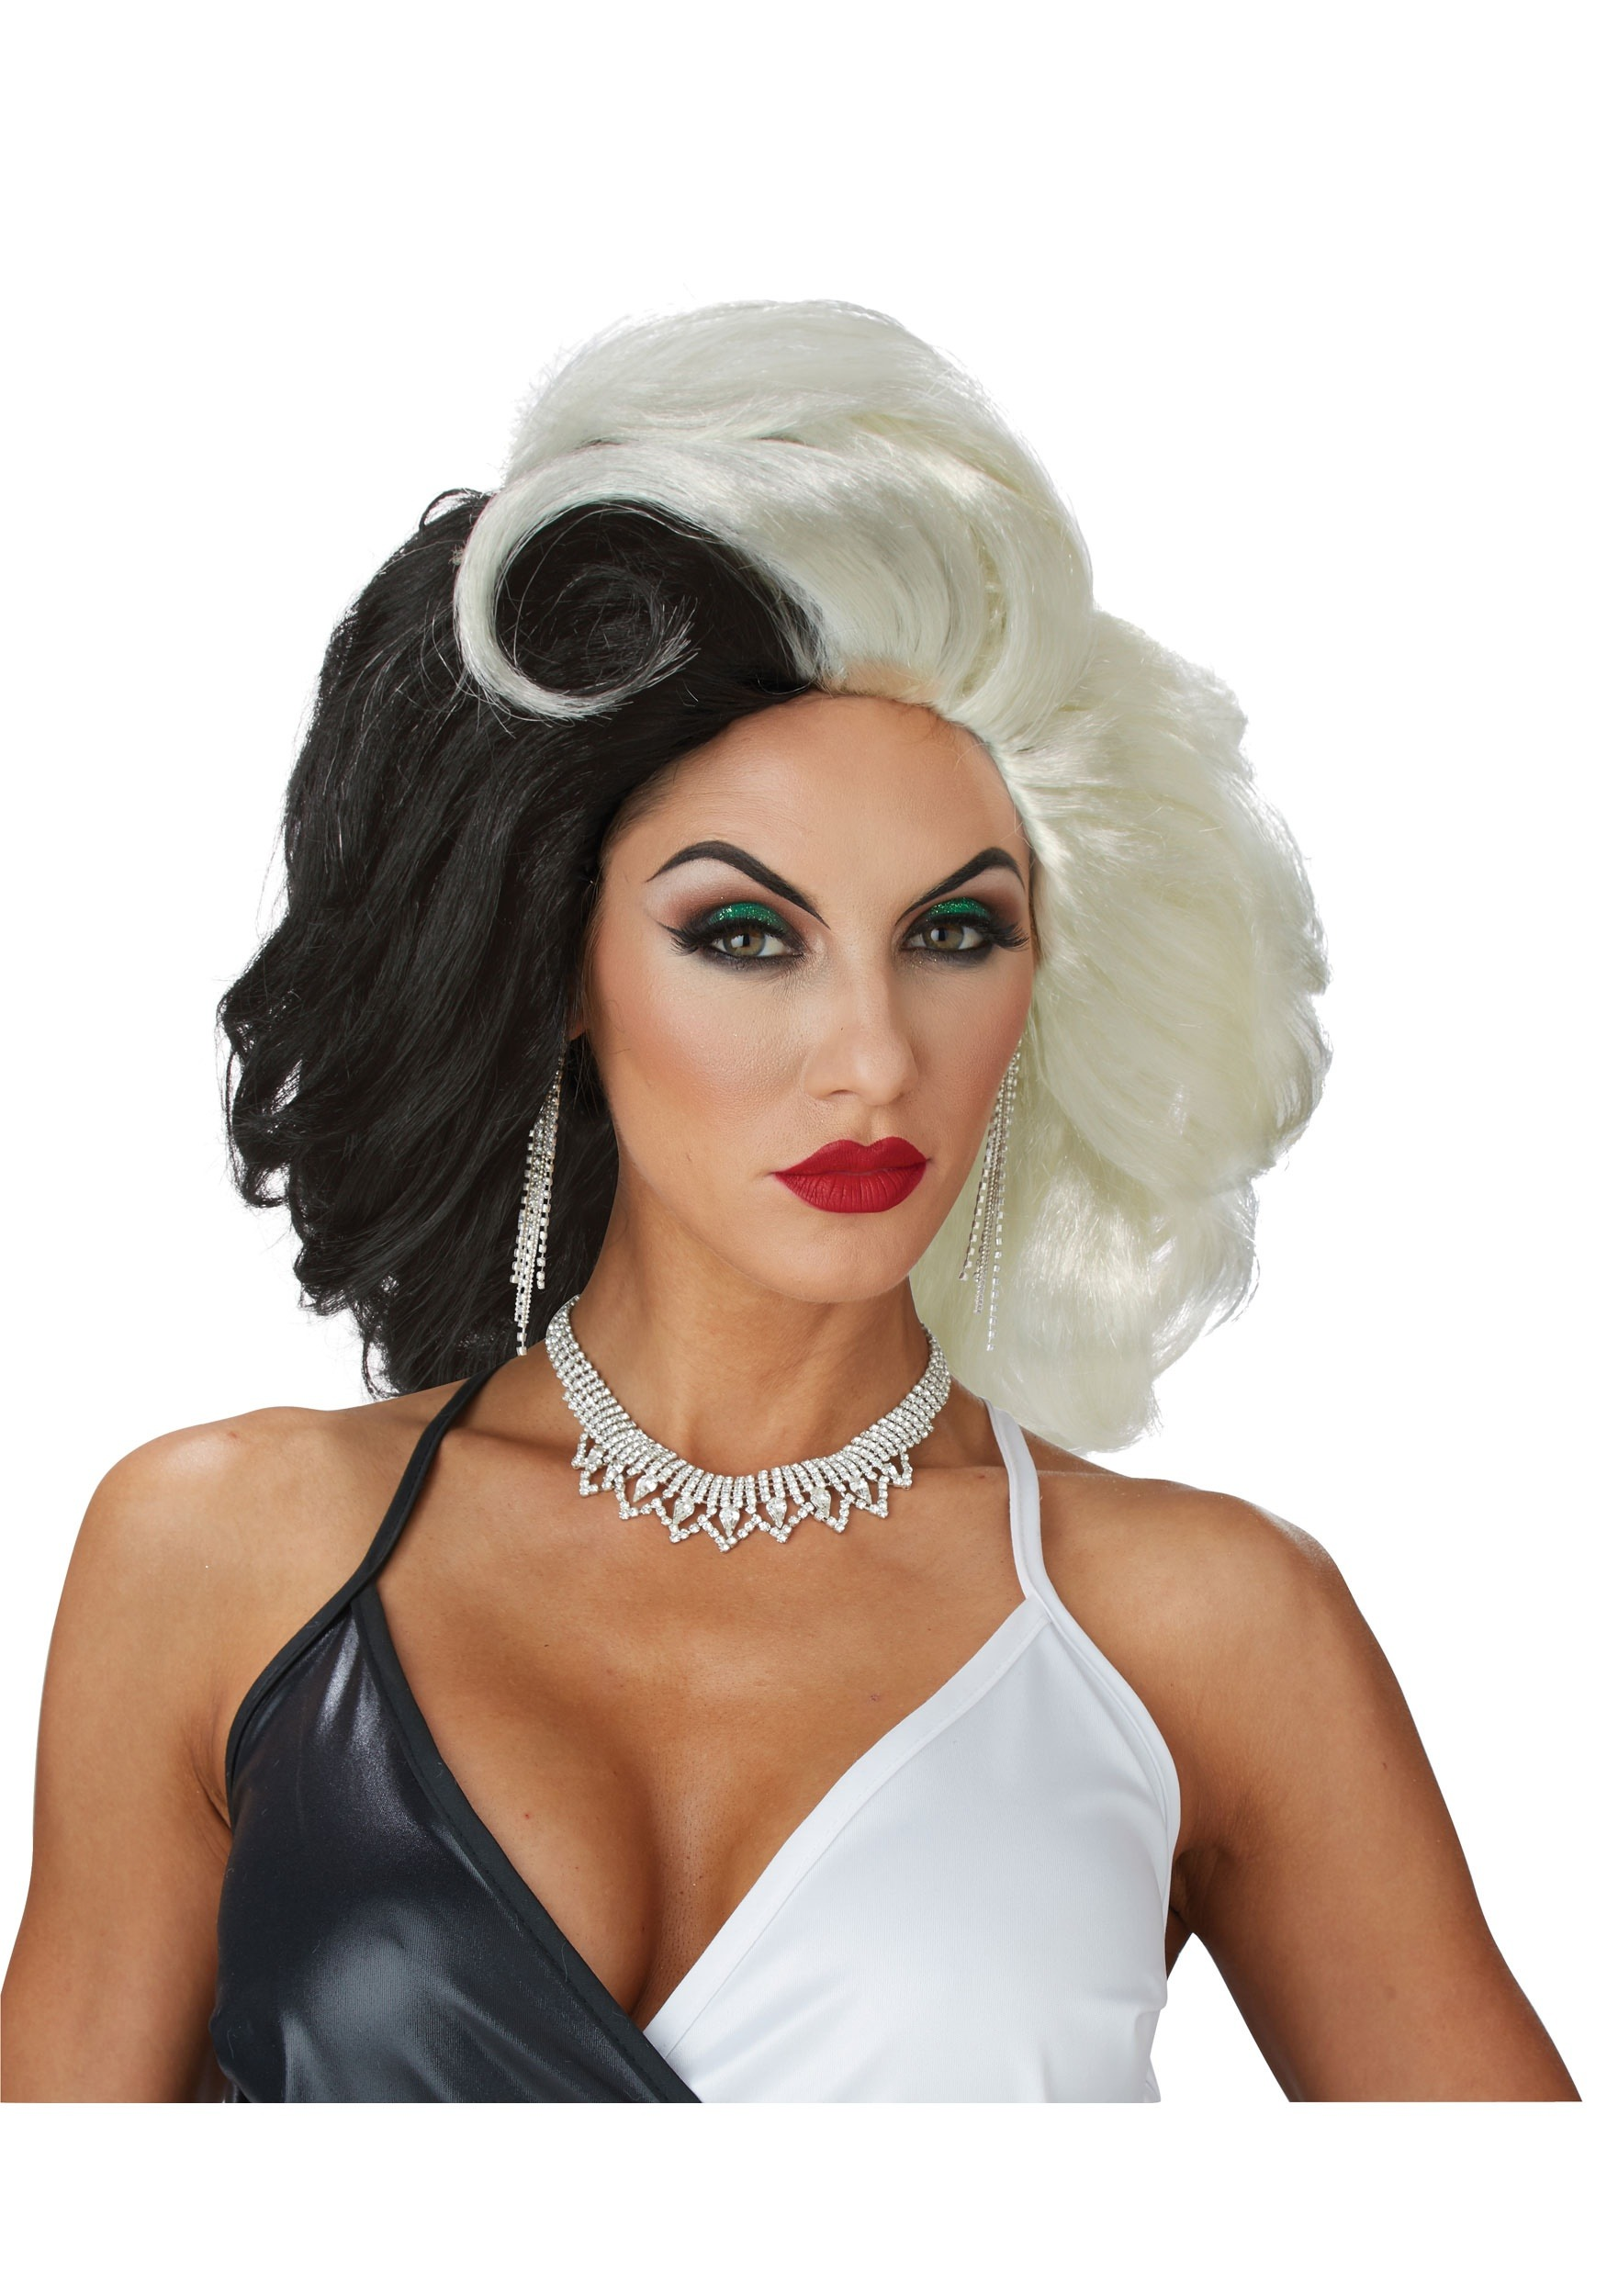 Cruel Diva Wig for Women 535db8b108